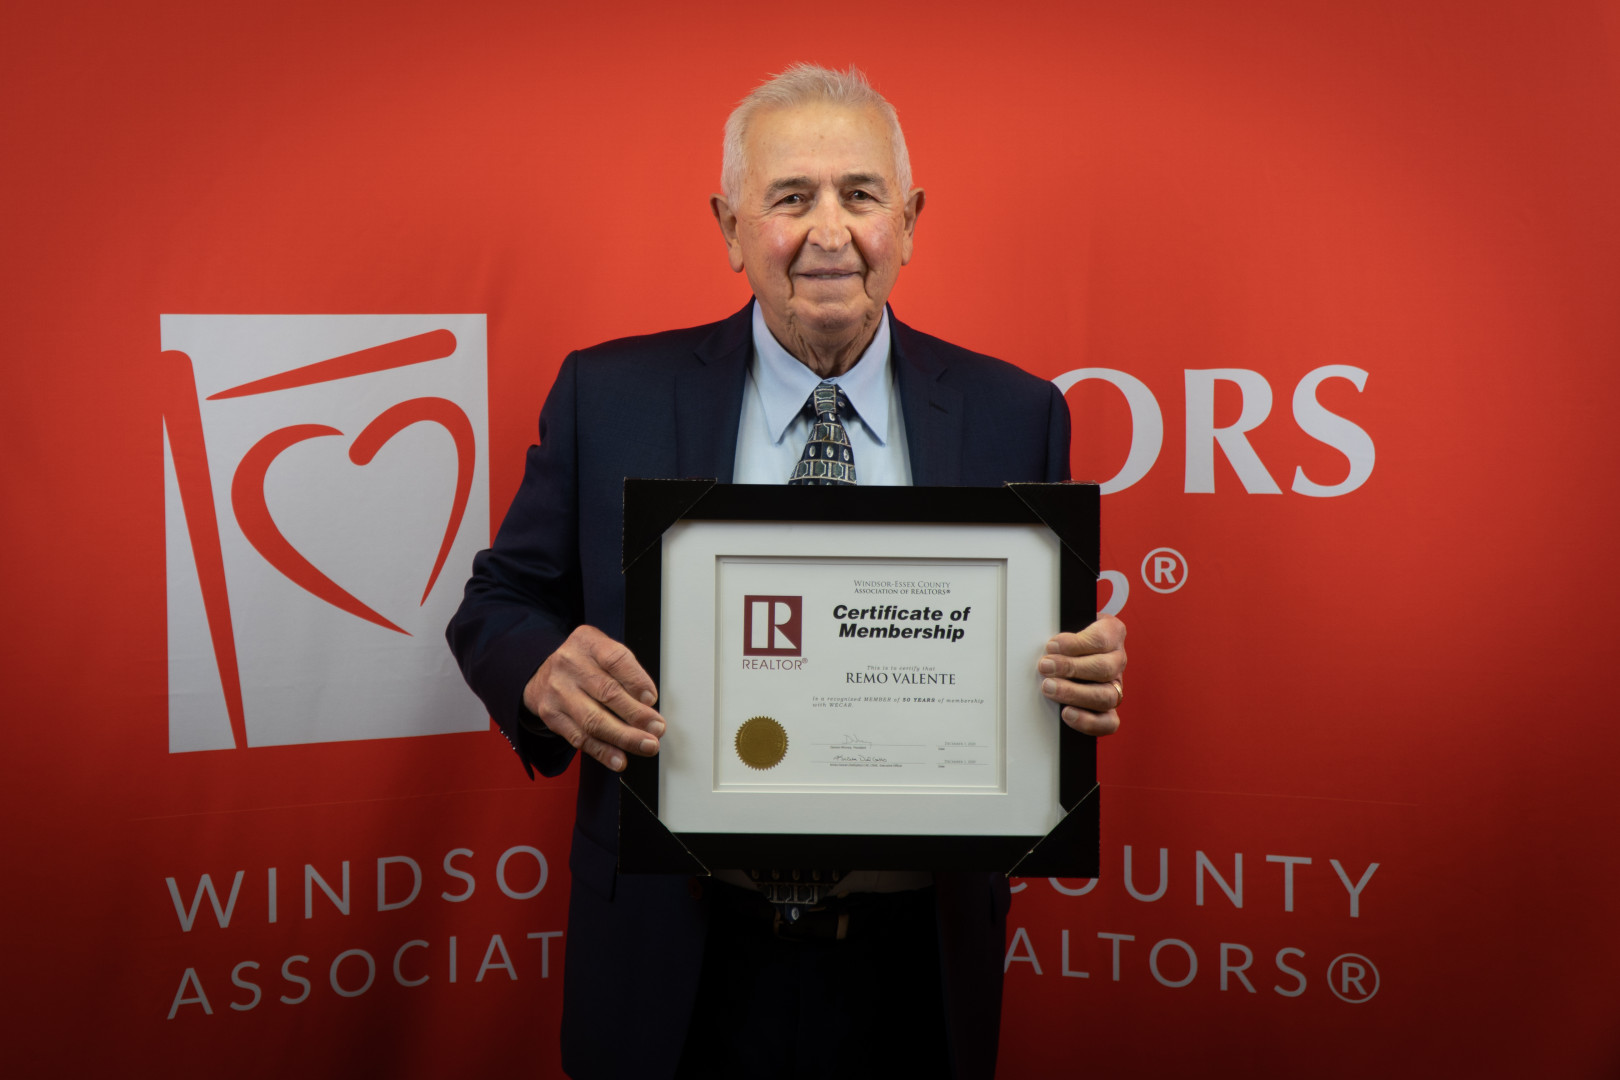 50 YEARS AND COUNTING... CONGRATULATIONS REMO VALENTE!